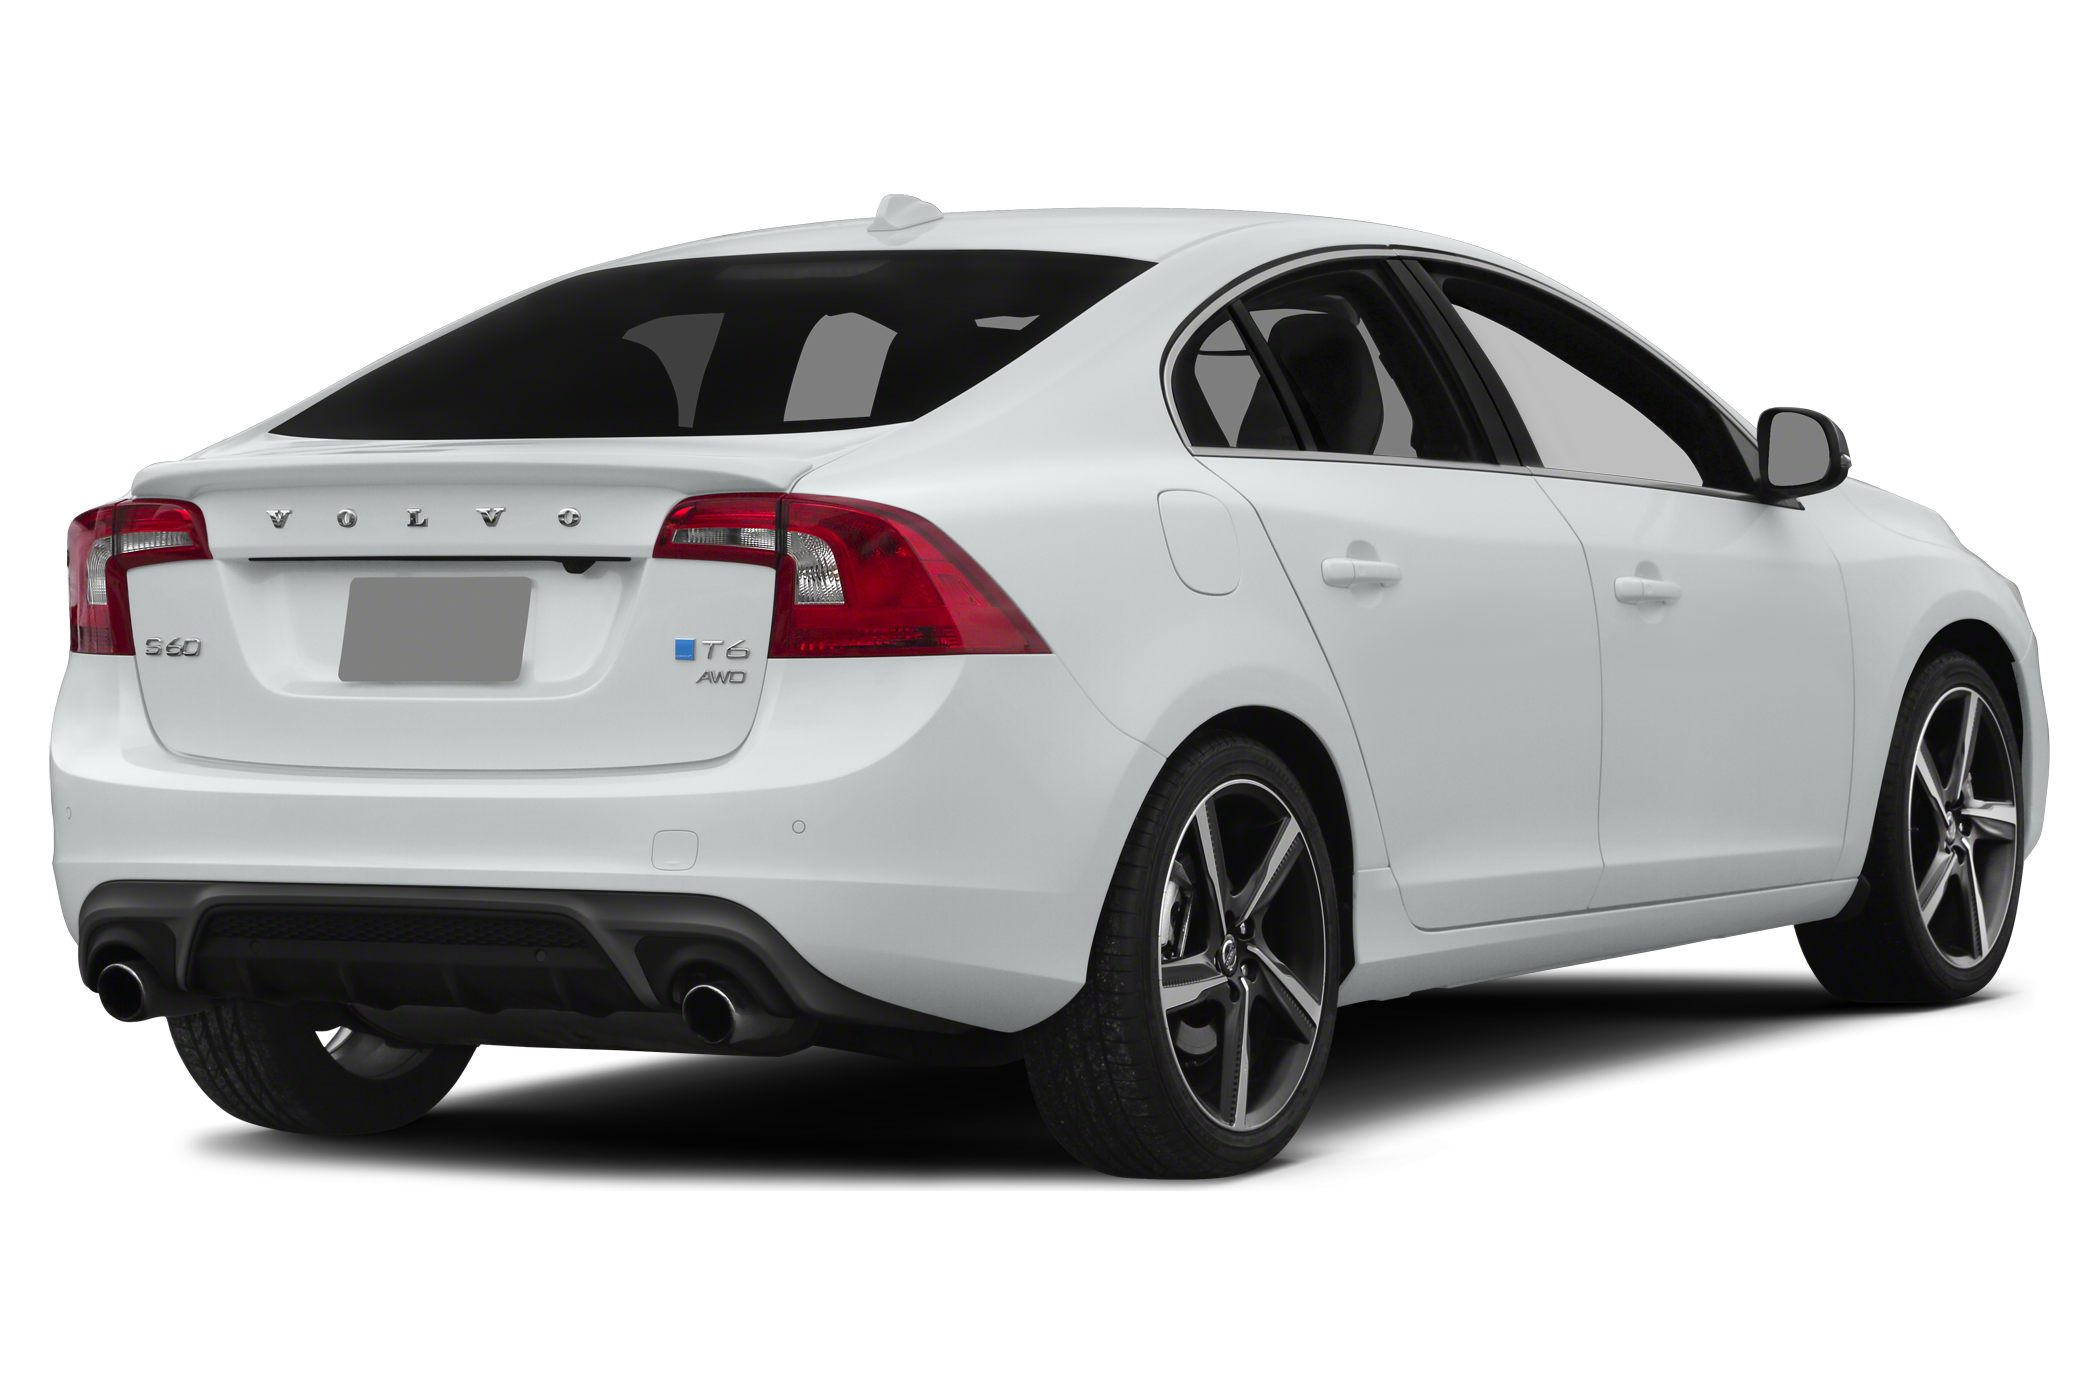 2017 Volvo S60 T6 R Design Platinum >> 2015.5 Volvo S60 T6 R-Design 4dr All-wheel Drive Sedan ...